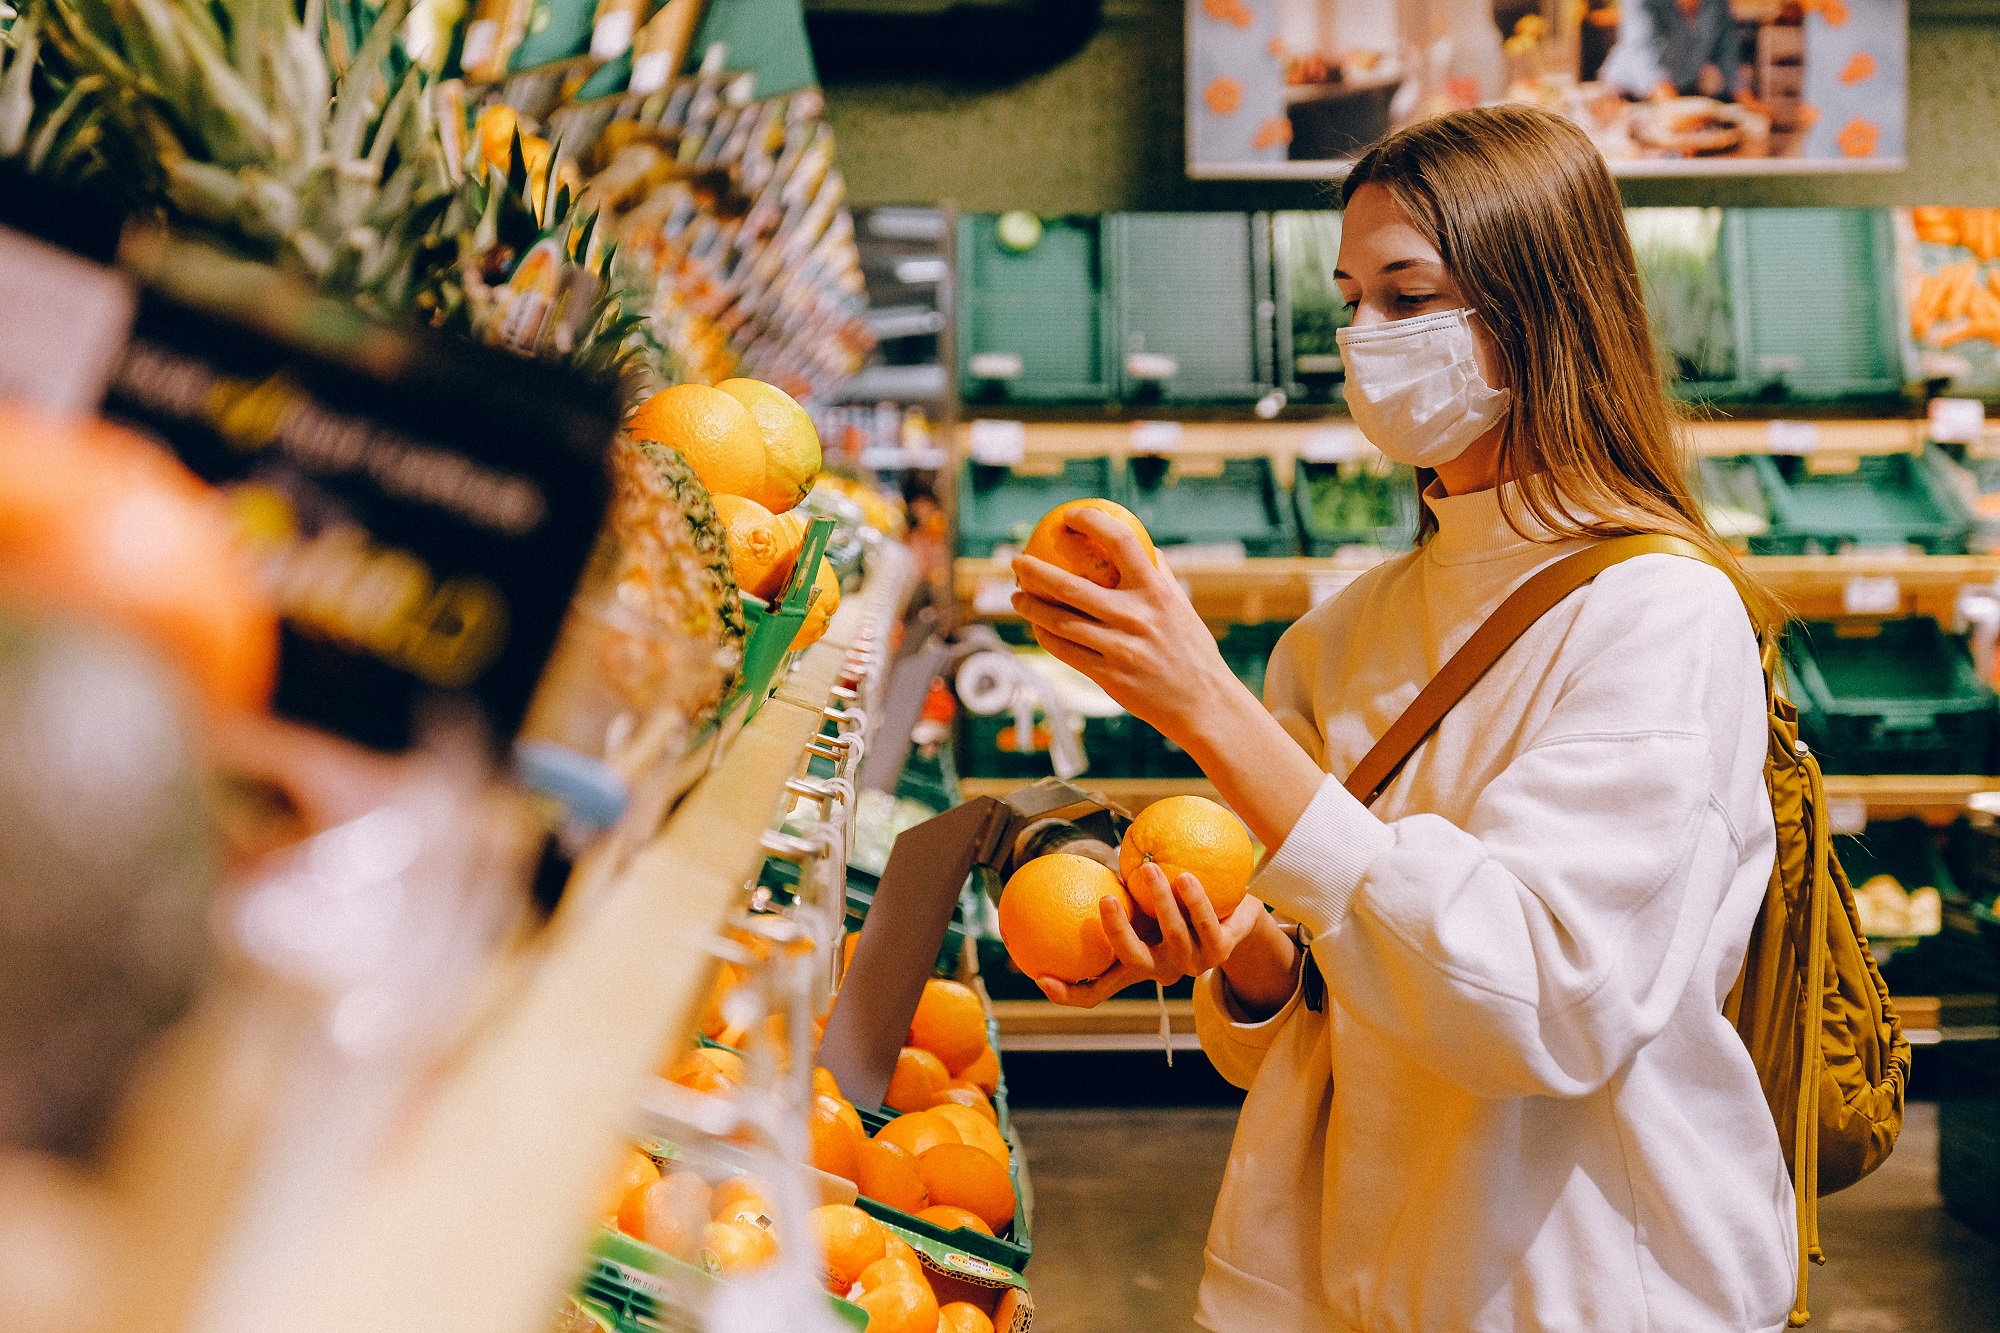 anna_shvets_woman_wearing_mask_in_supermarket_pexels.jpg